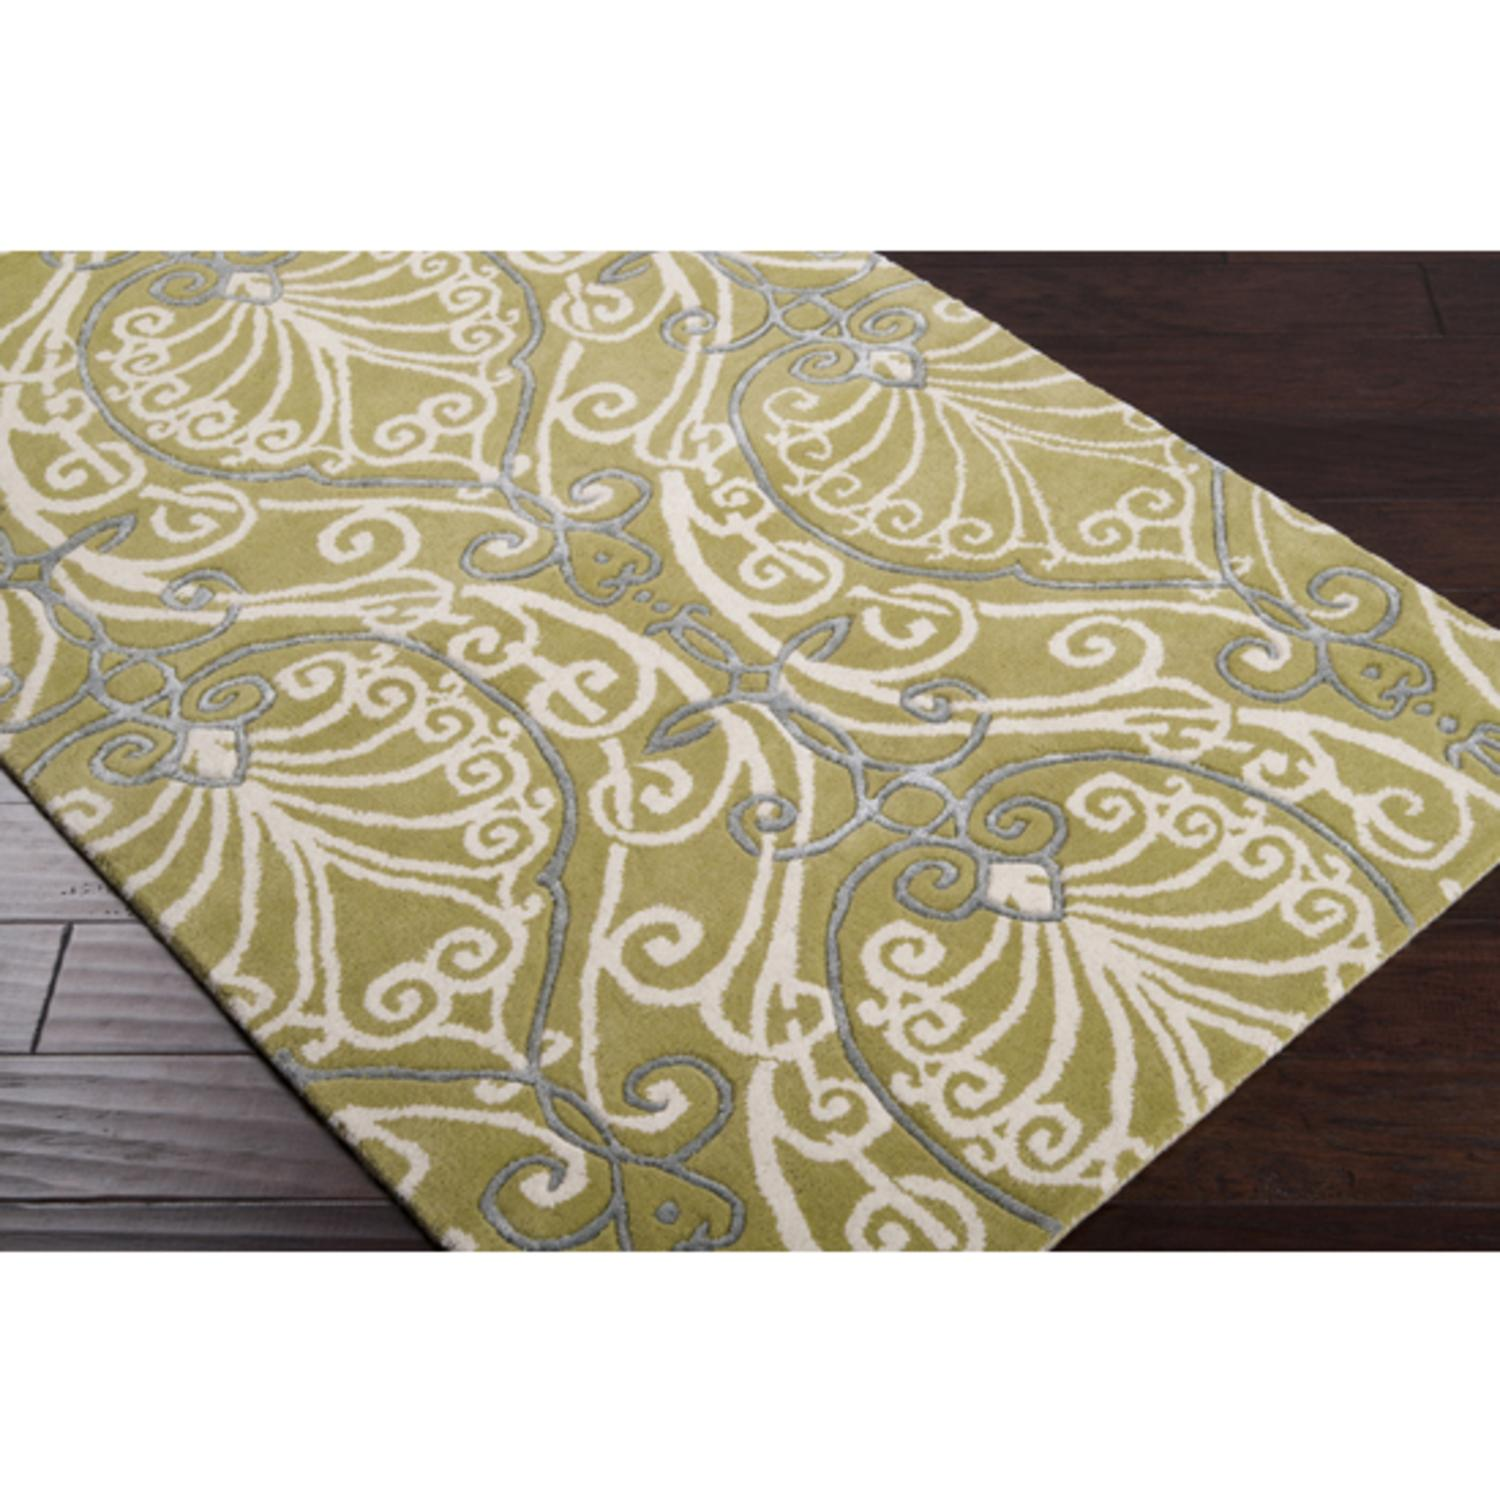 5' x 8' Arabesque Avocado Green Wool Area Throw Rug